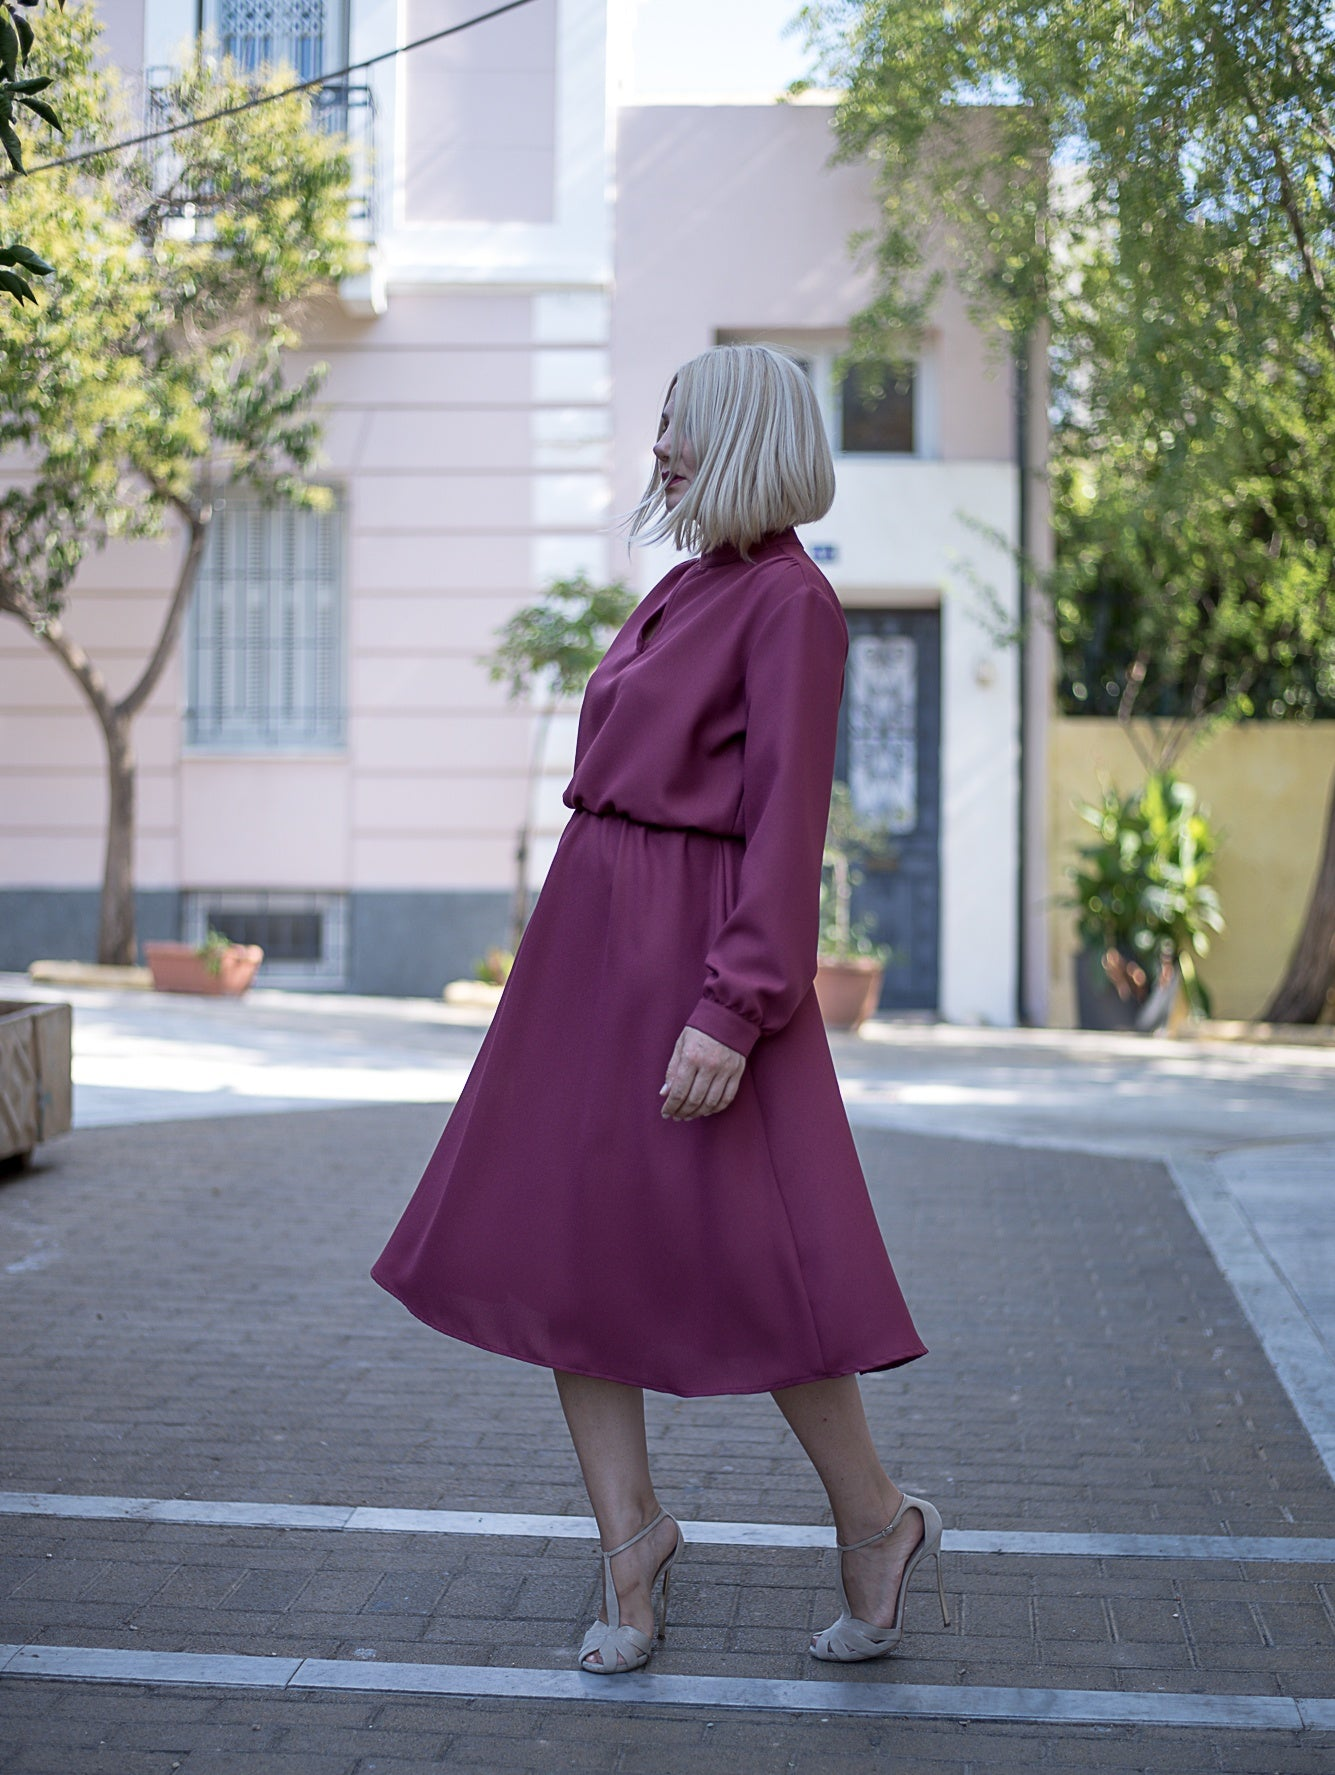 Diana Burgundy Midi Dress Damodastories Collection